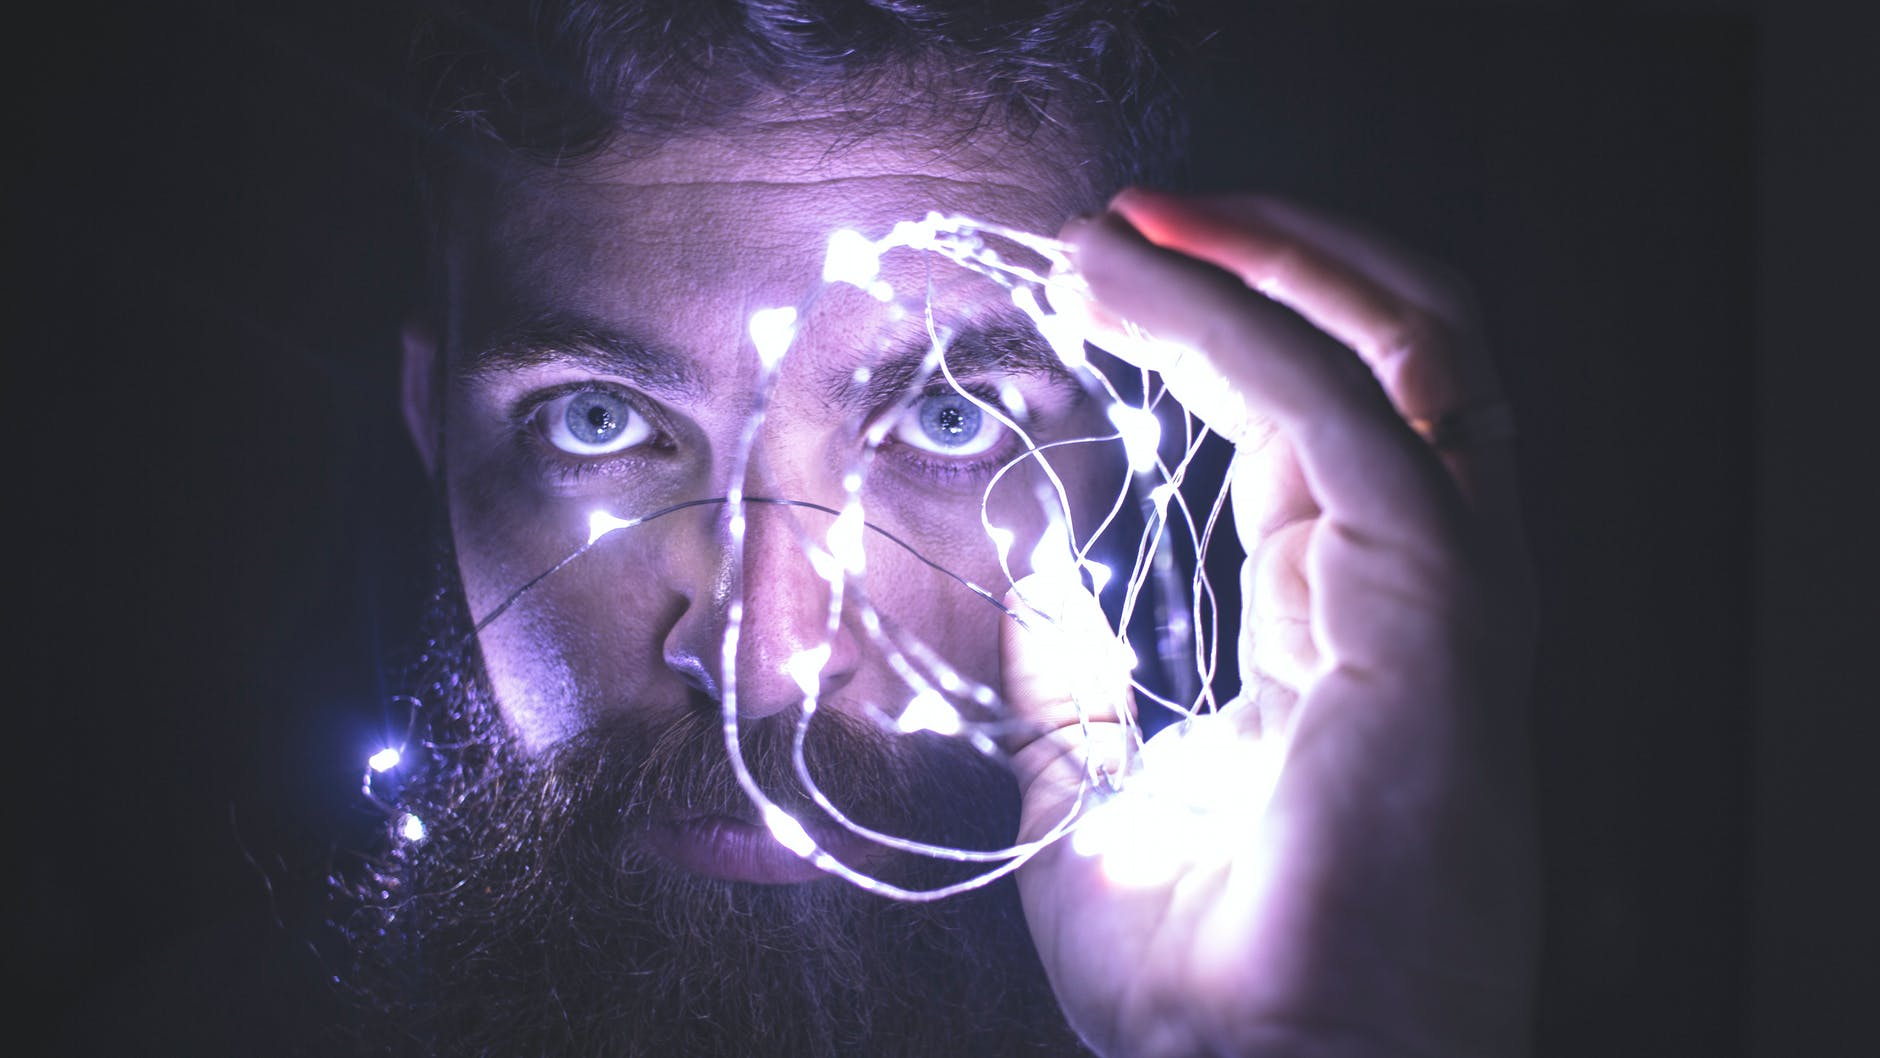 Image of a person holding string lights representing vision for team performance.